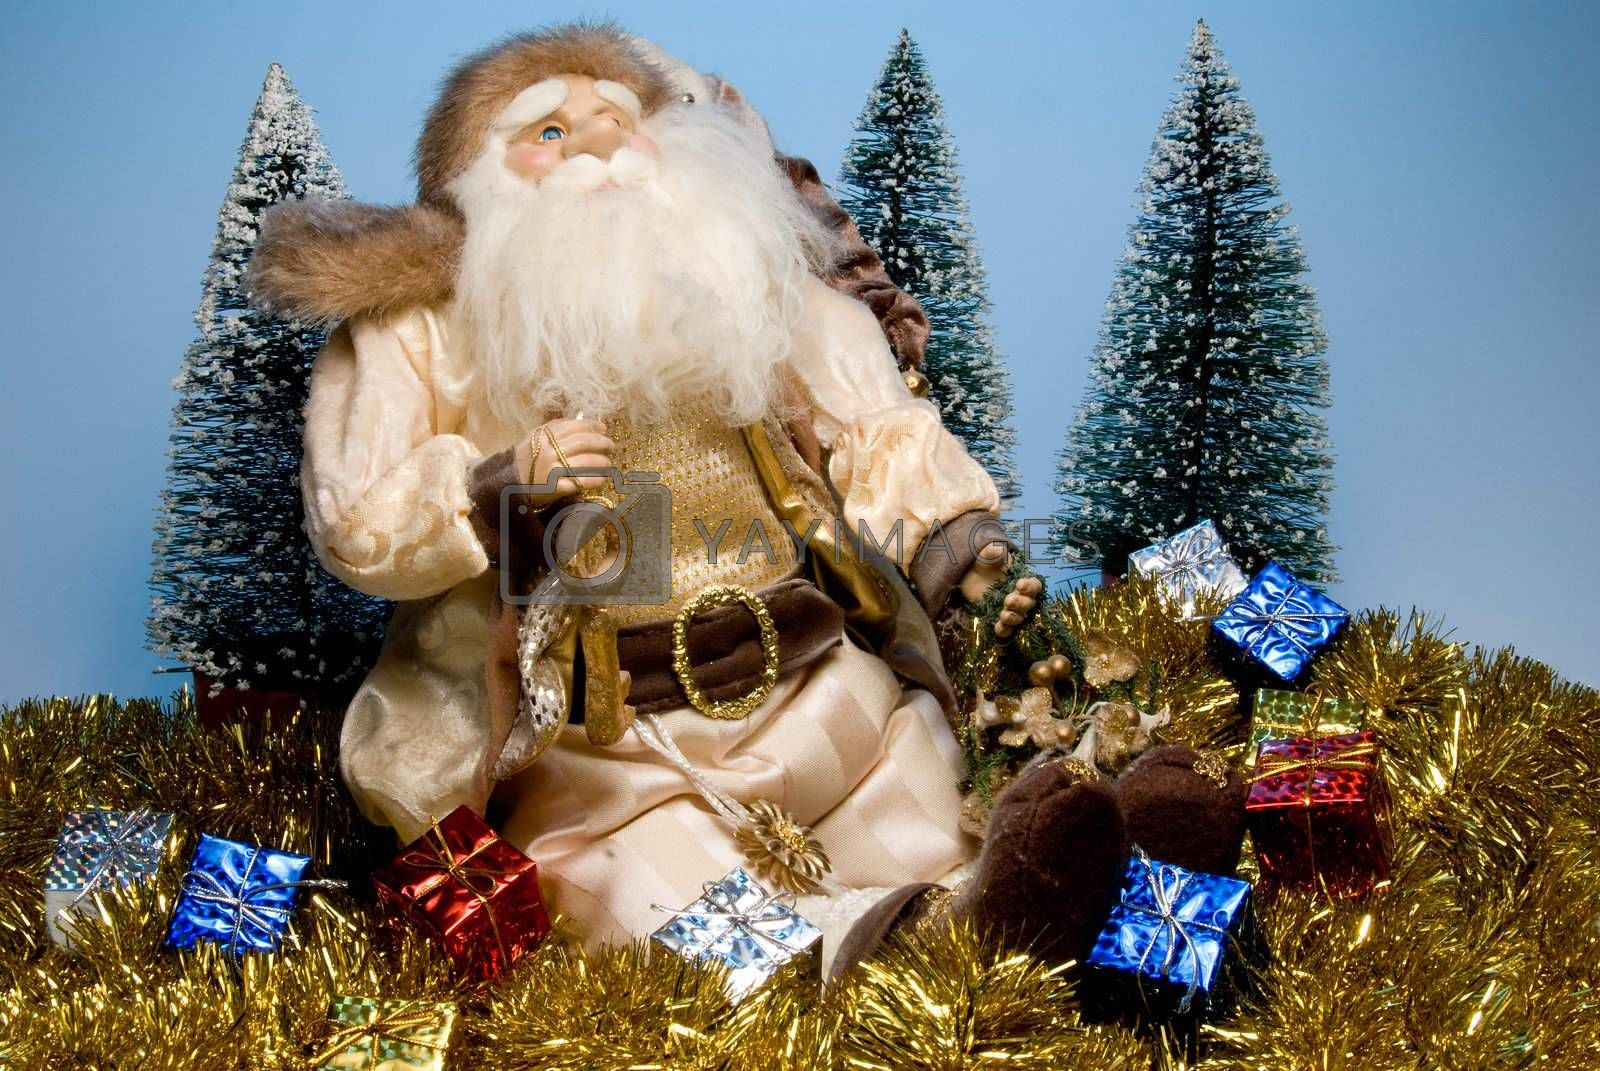 Santa Claus surounded by holiday Christmas gifts.